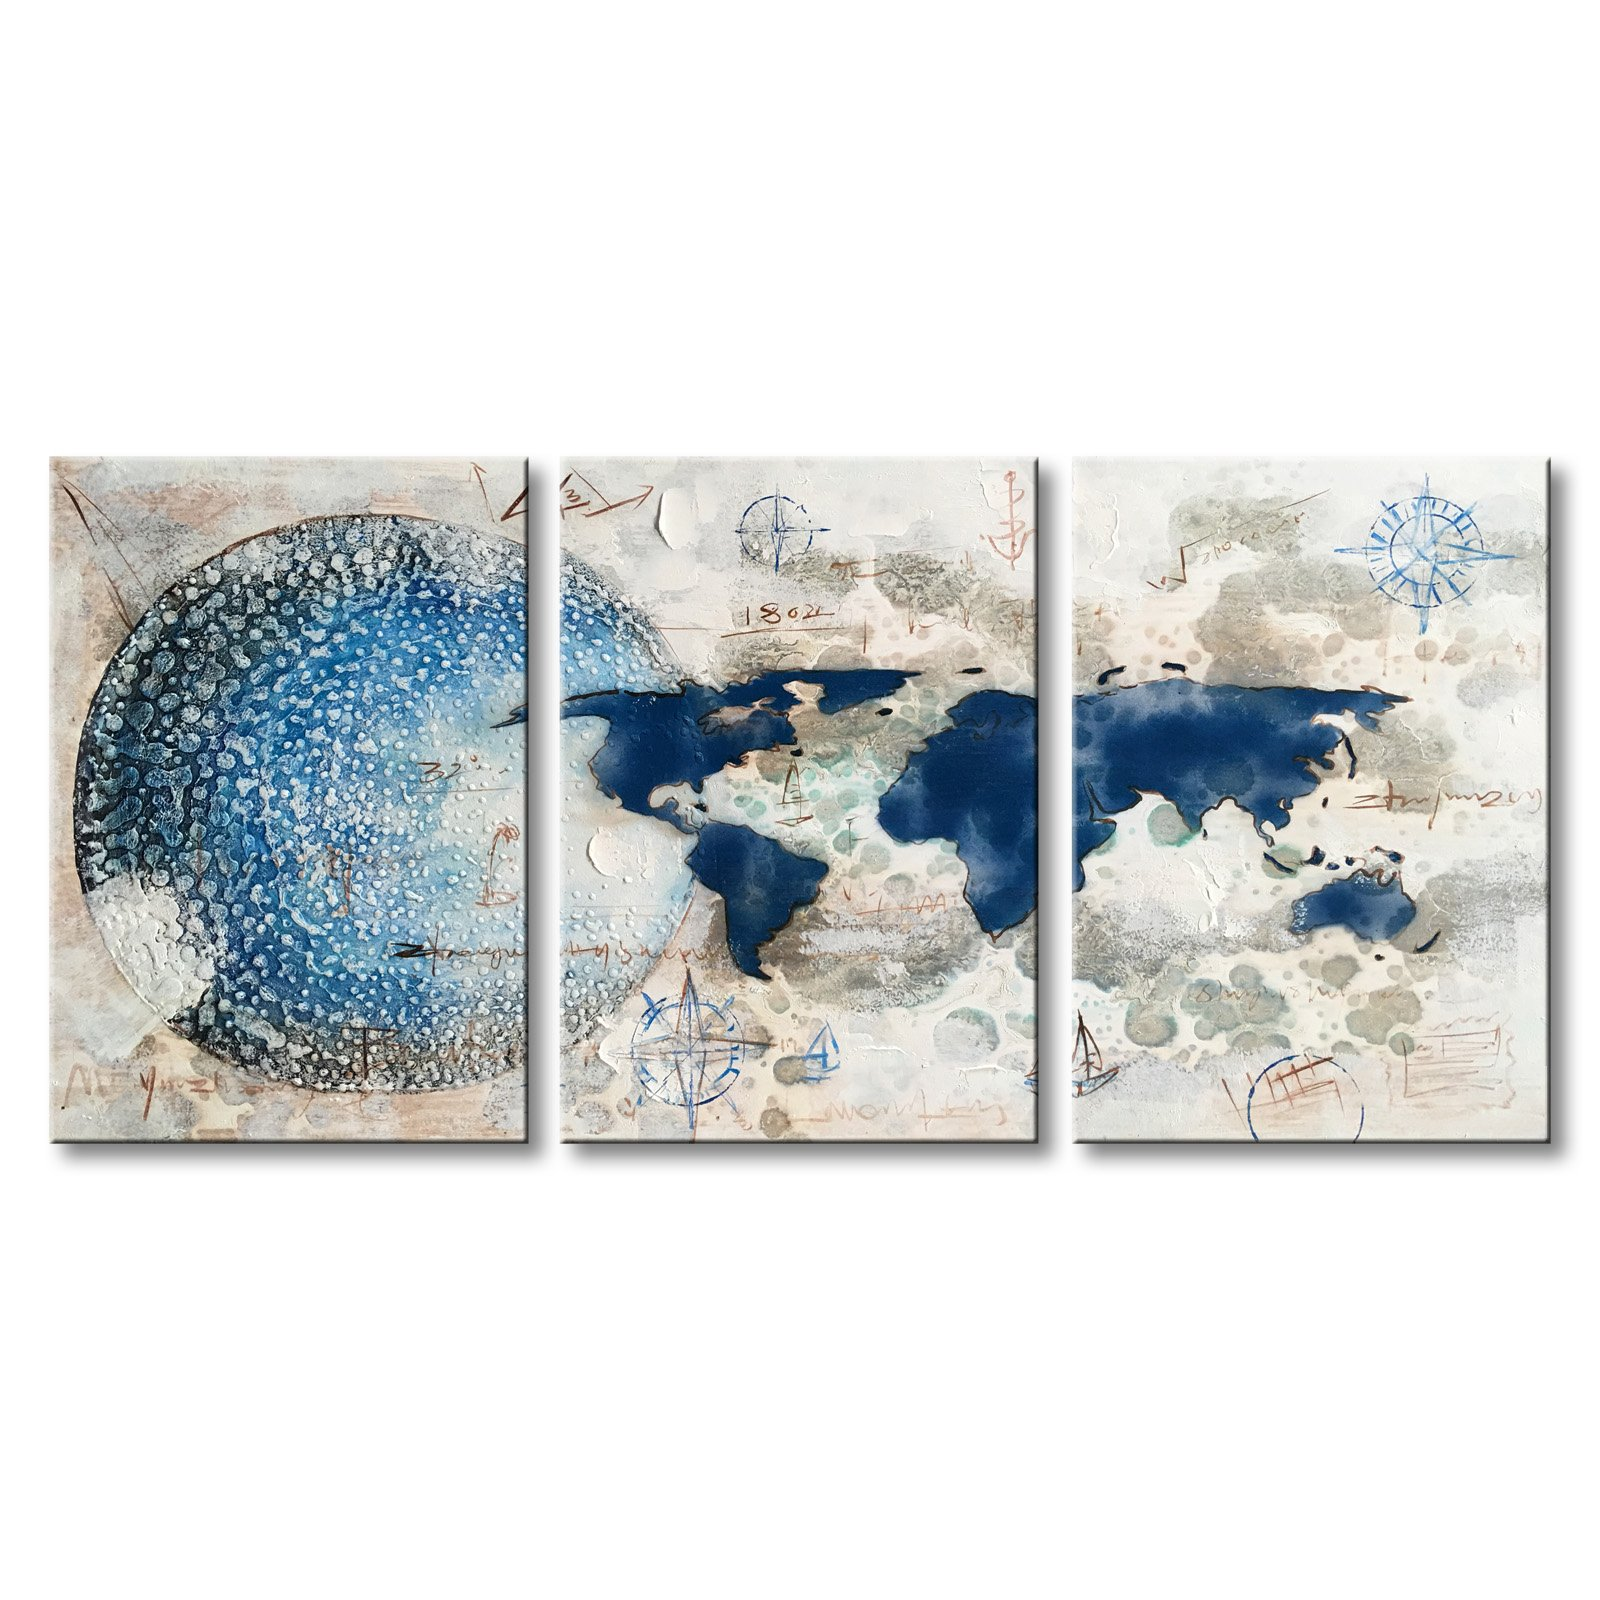 Everfun Hand Painted Canvas Painting World Map Decor Modern 3 Piece Wall Art Blue and White Abstract Gallery Artwork Framed Ready to Hang